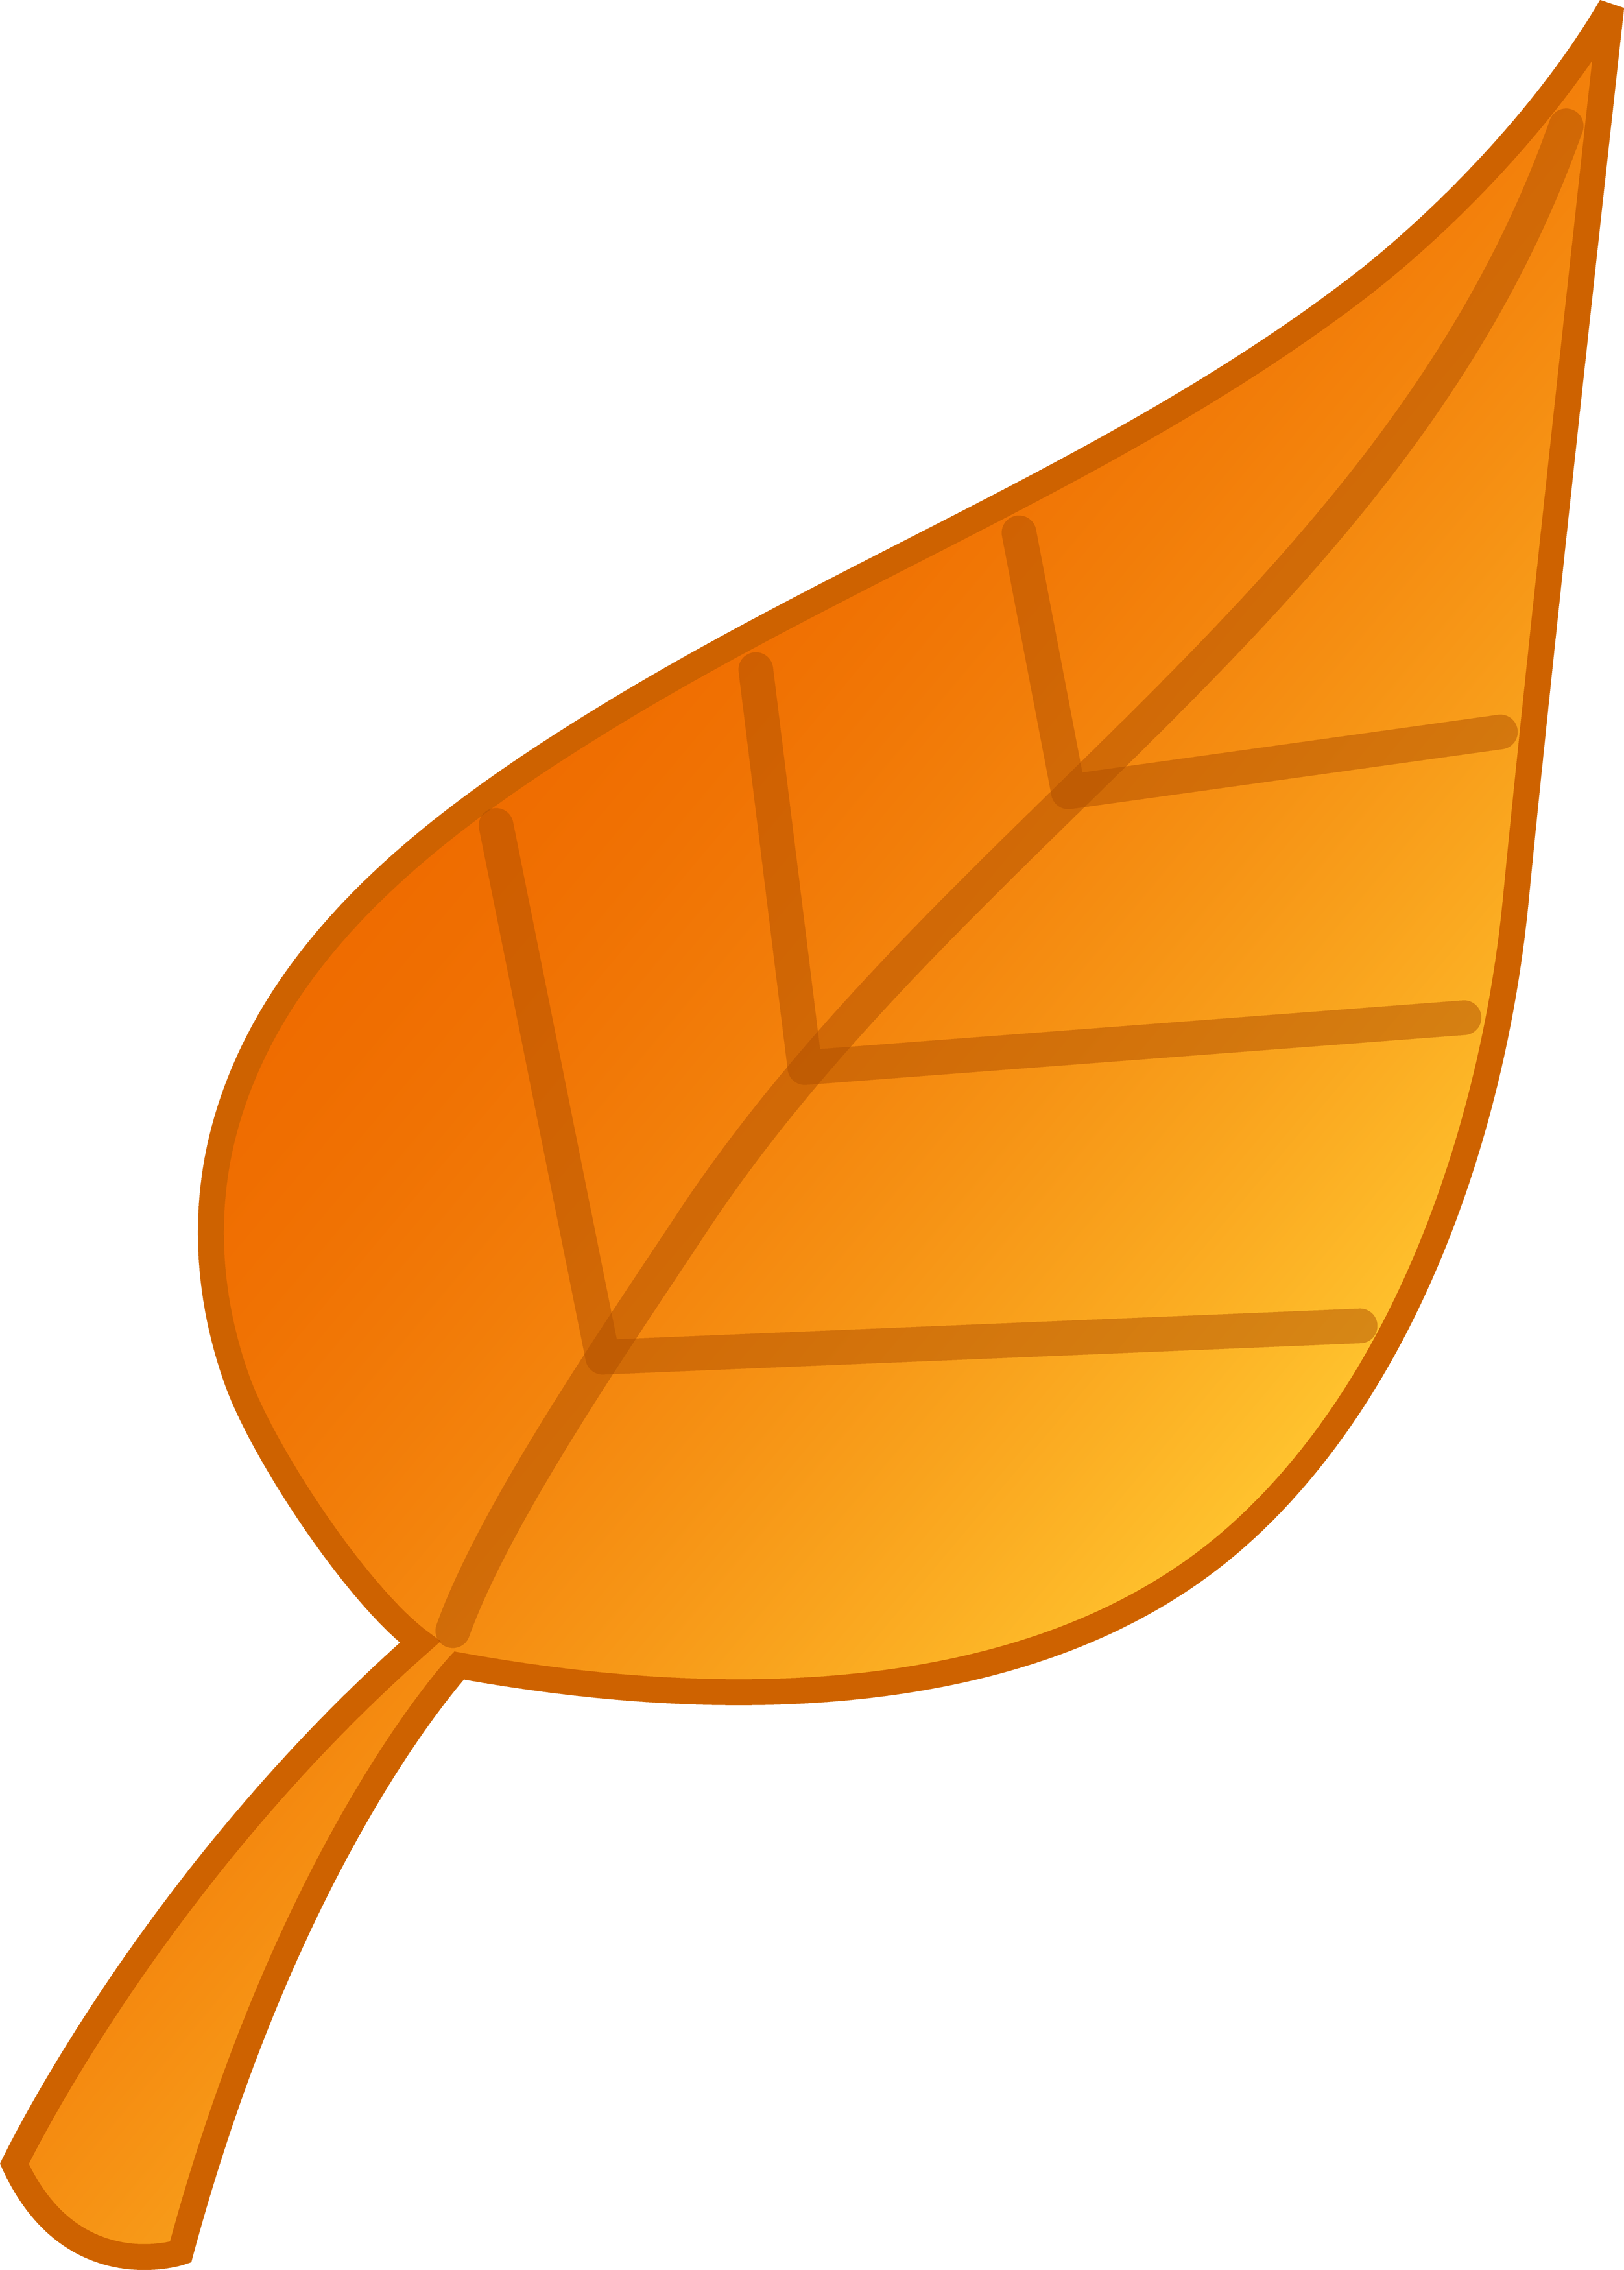 Fall leaves clip art library